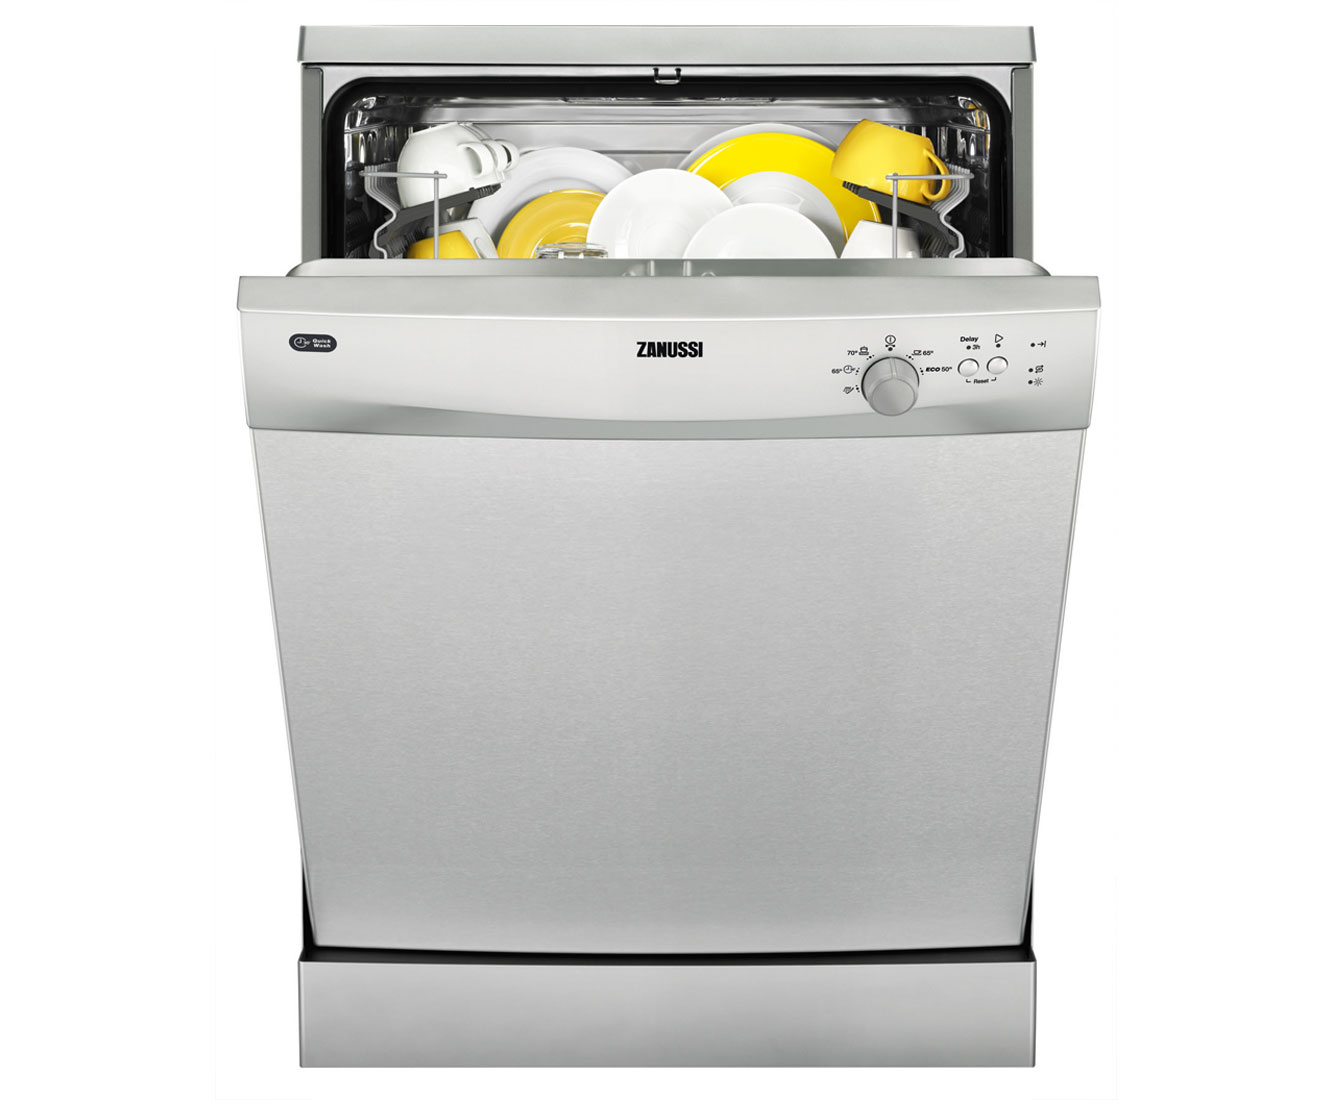 Zanussi ZDF21001XA Free Standing Dishwasher in Stainless Steel